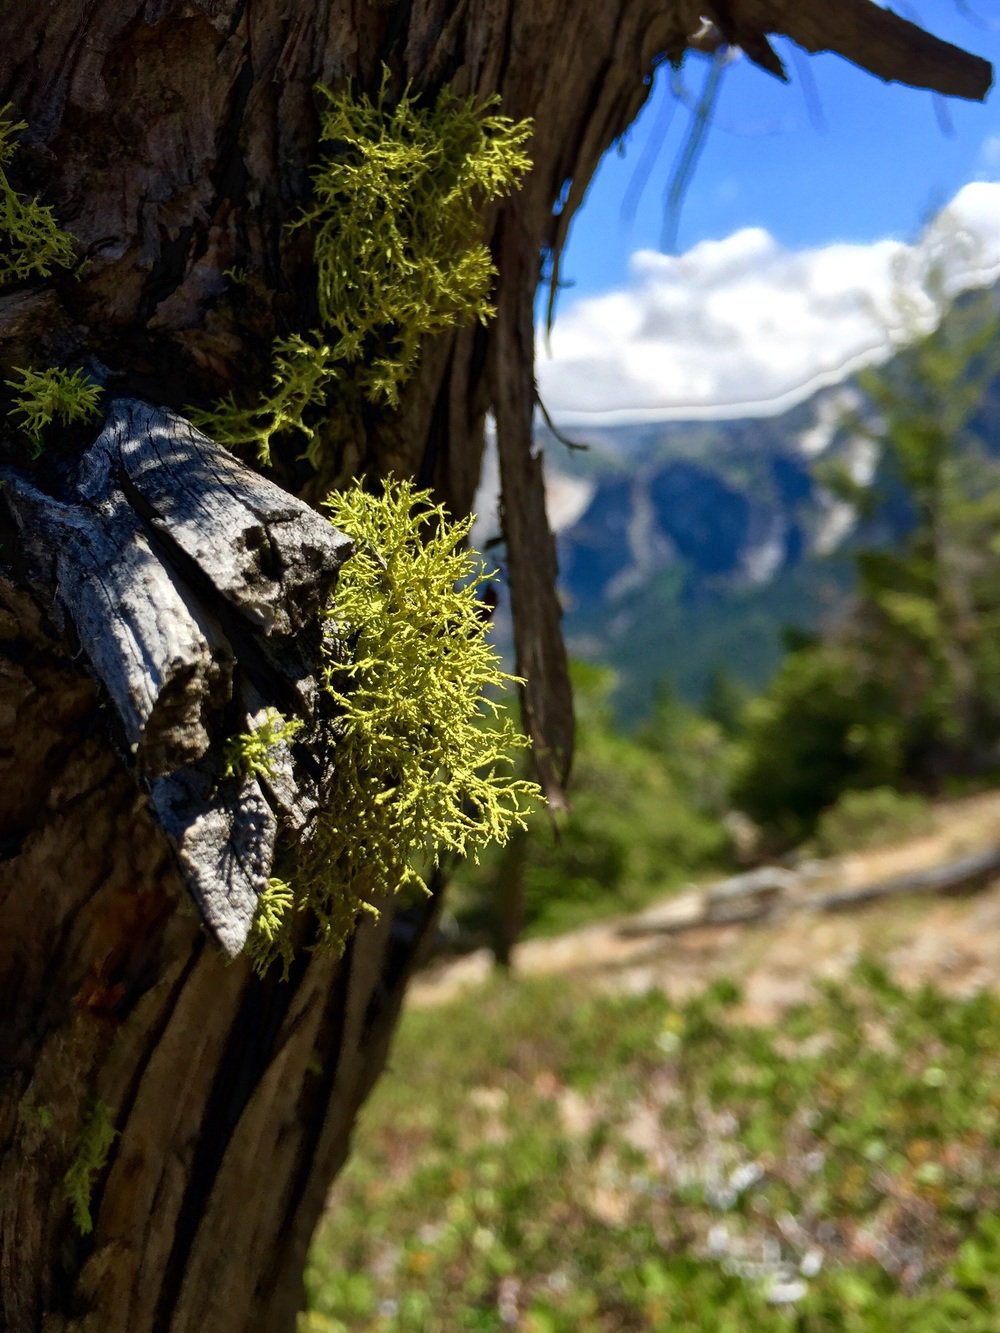 This beardy moss was everywhere at this elevation in Yosemite.